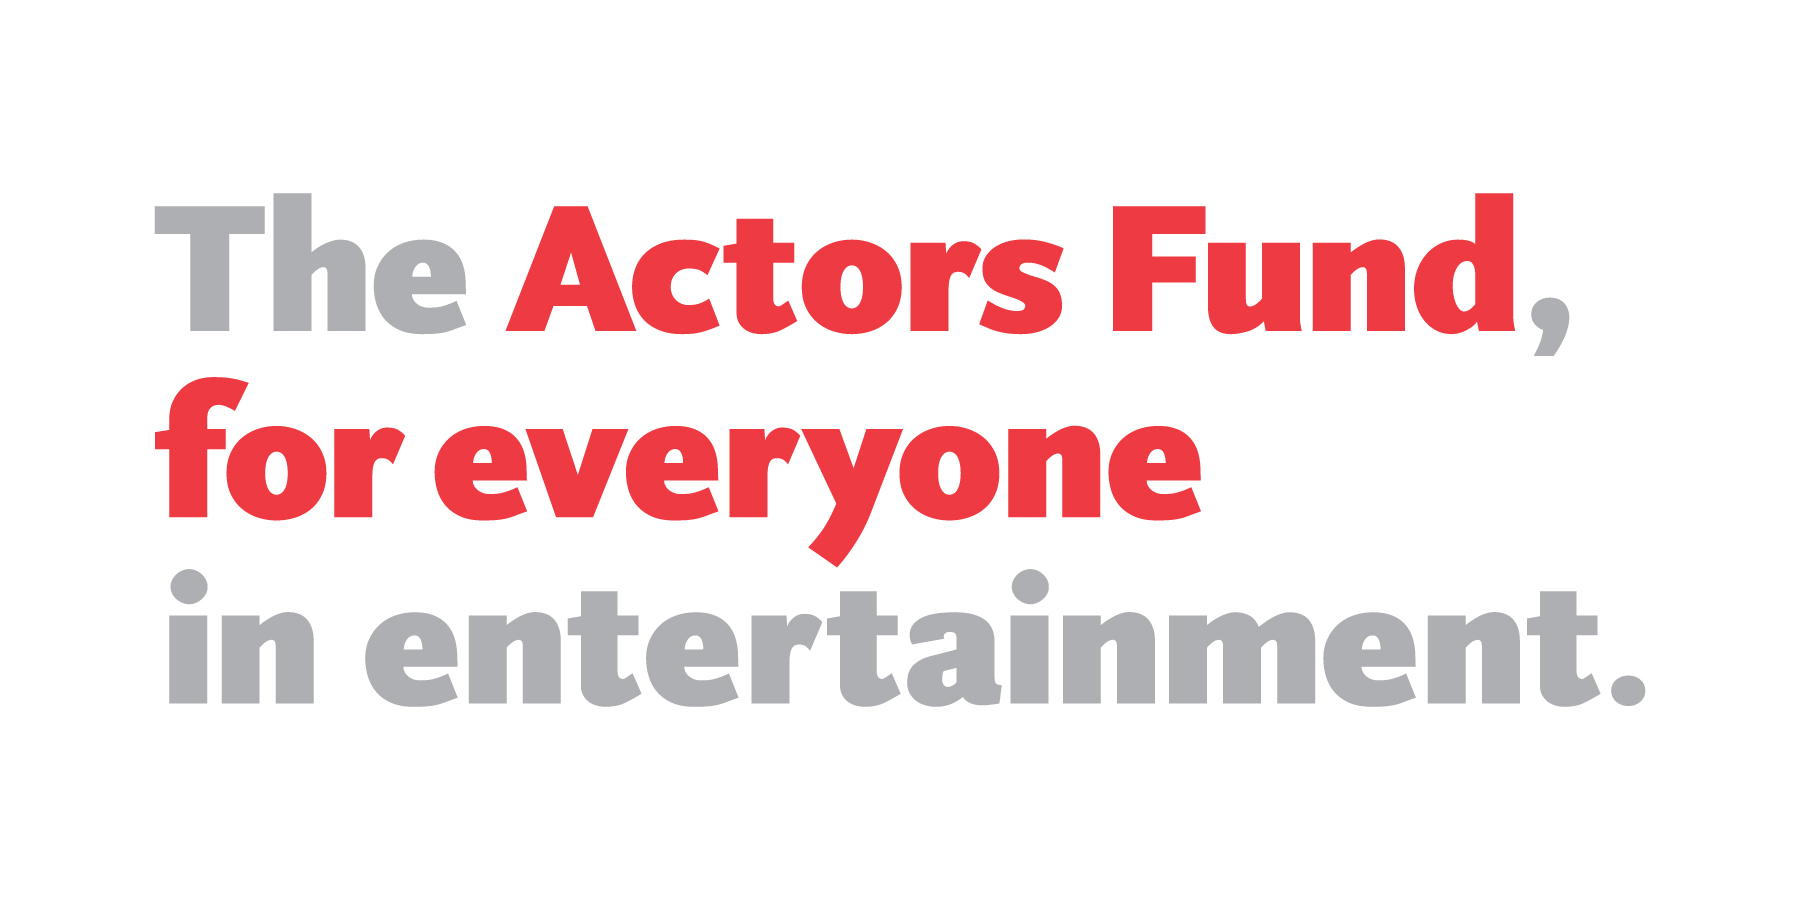 The Actor's Fund